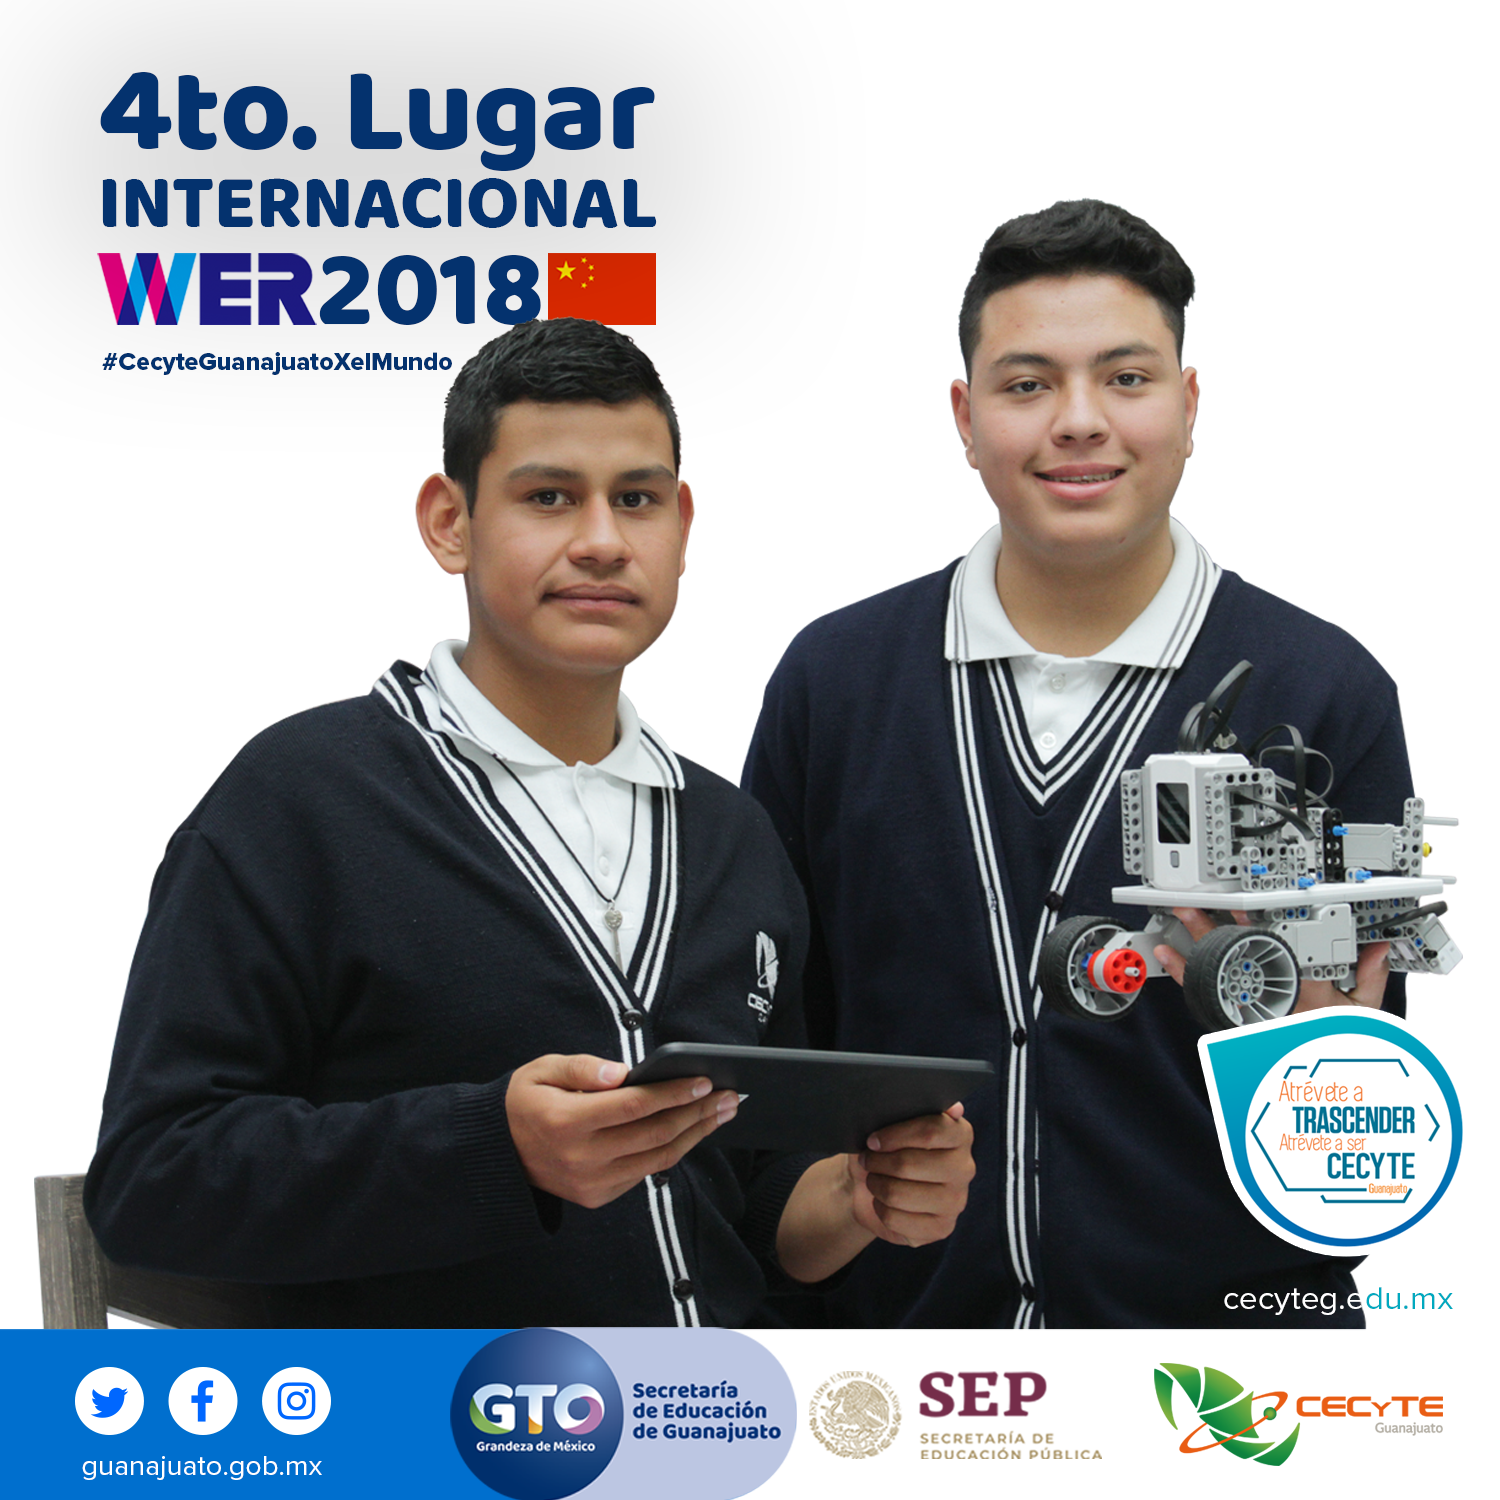 4to Lugar Internacional WER 2018